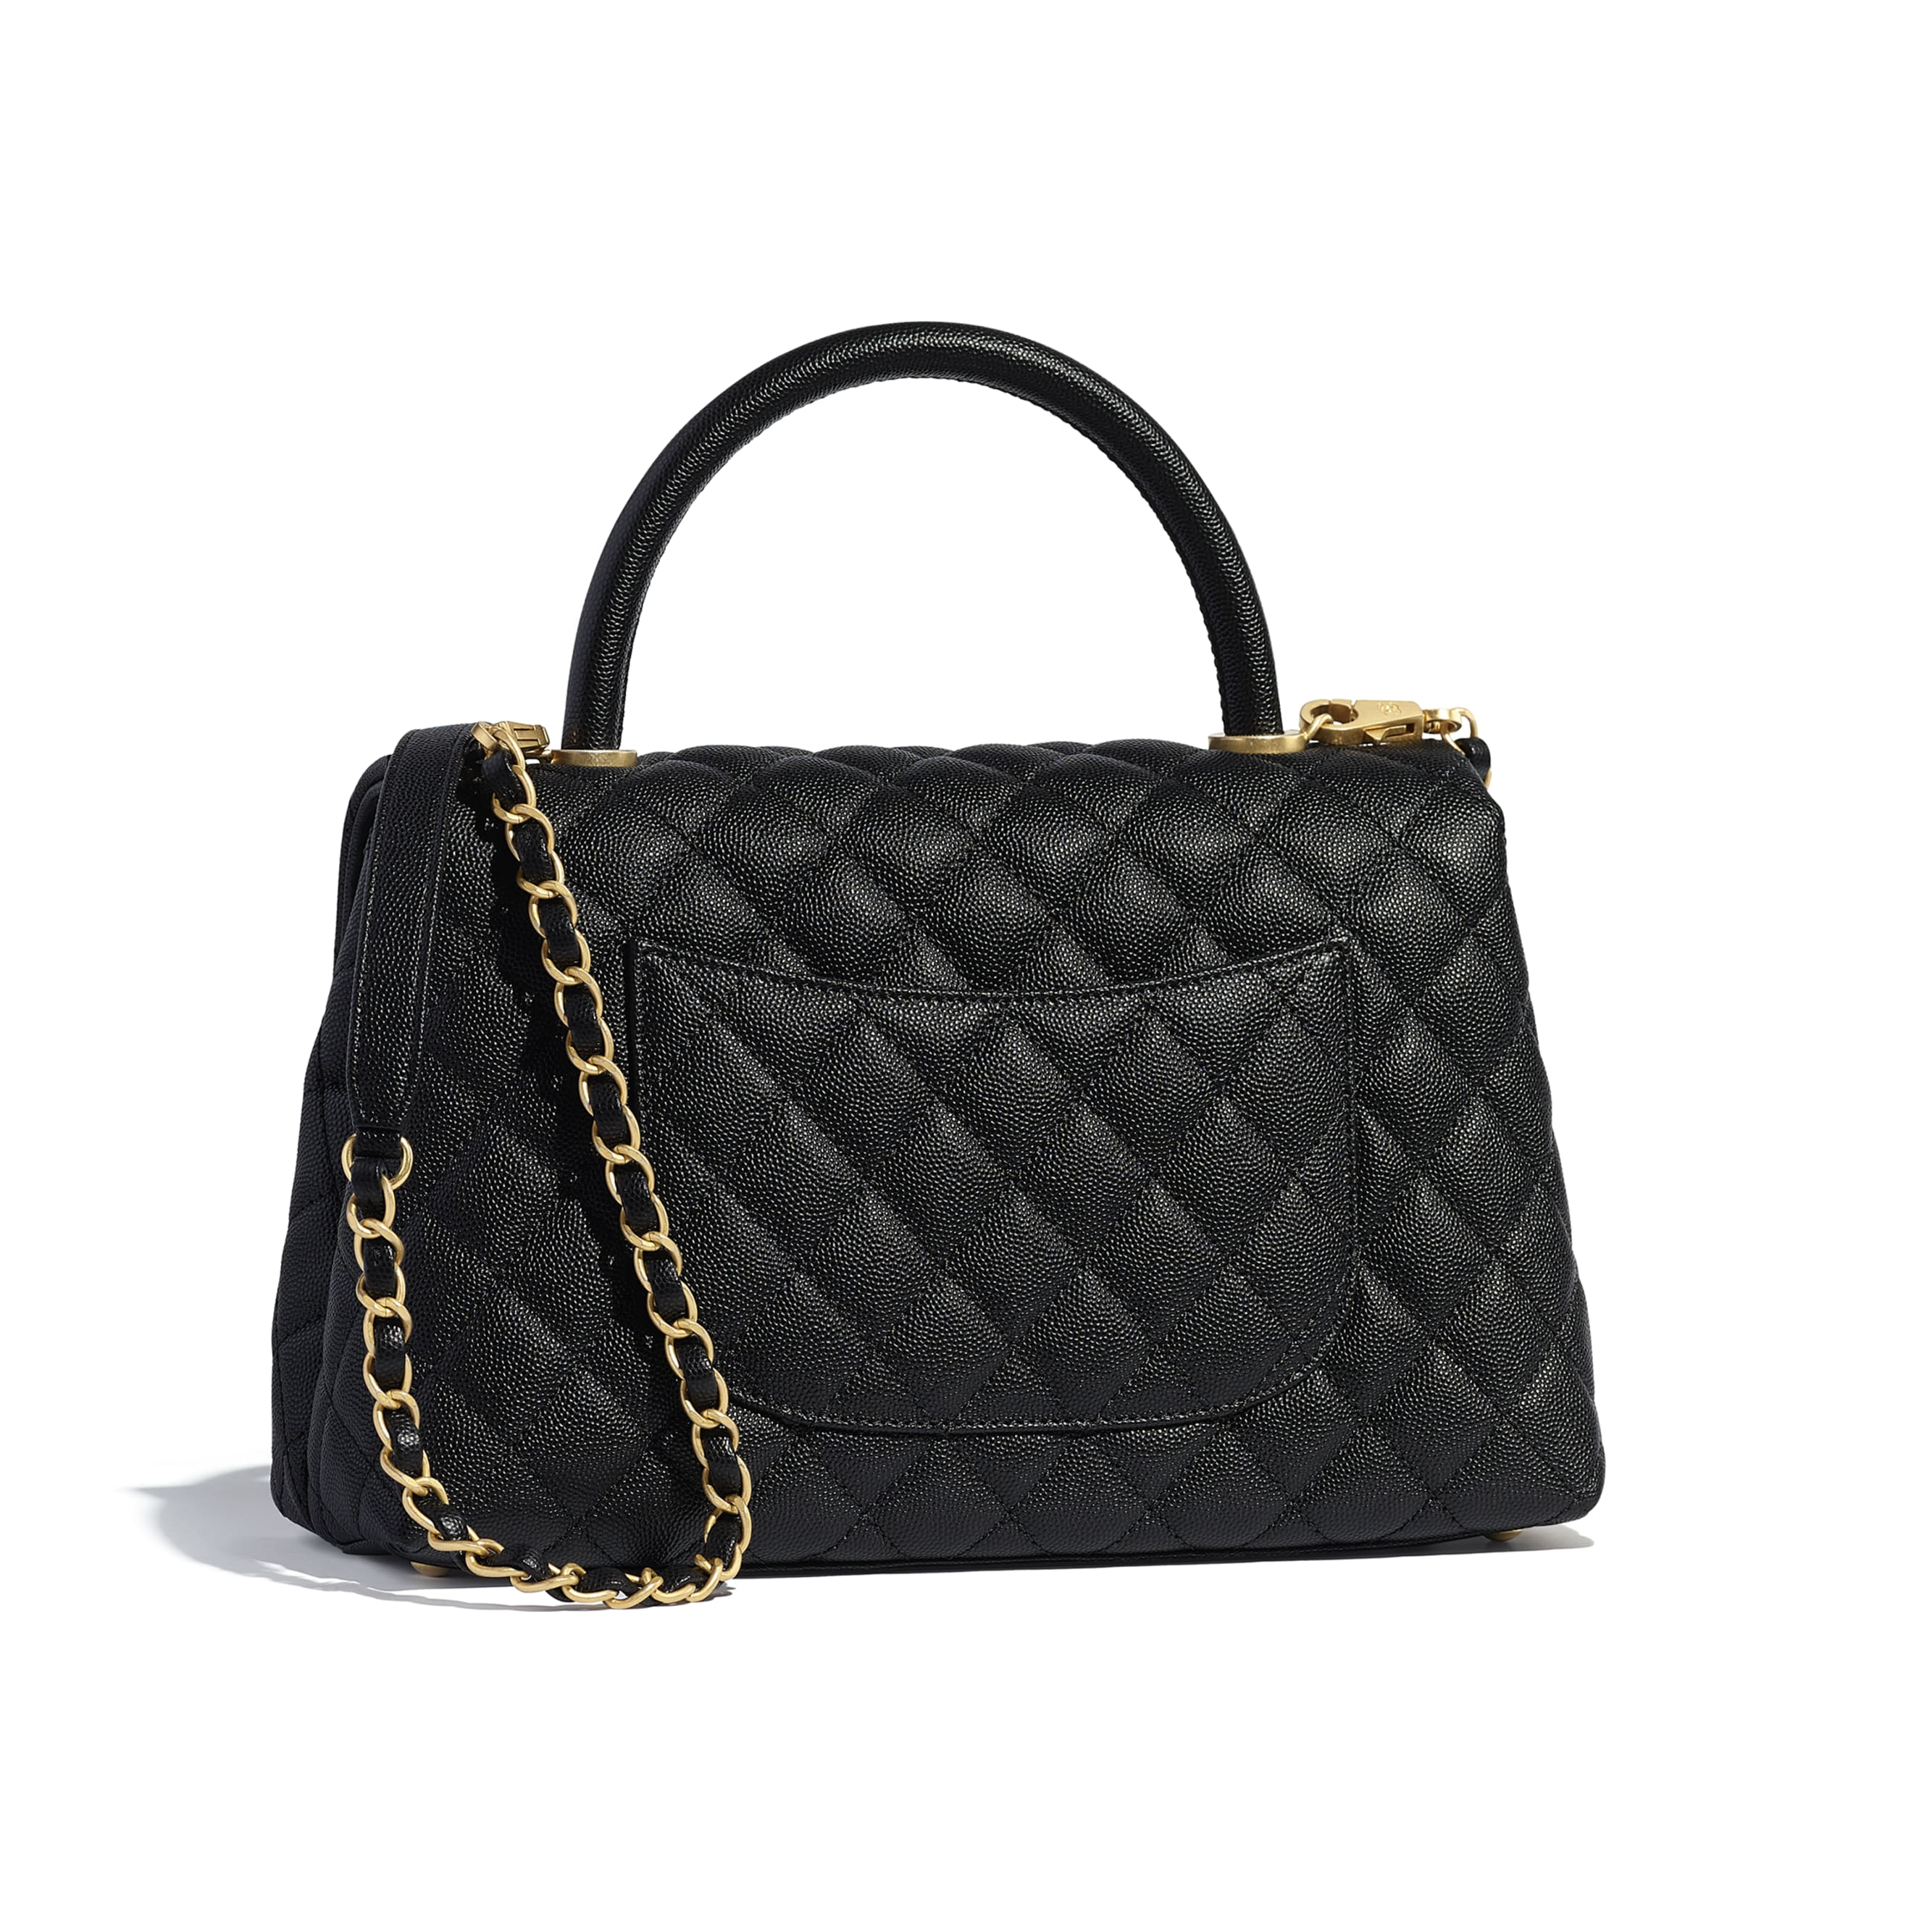 Flap Bag With Top Handle - Black - Grained Calfskin & Gold-Tone Metal - Alternative view - see standard sized version